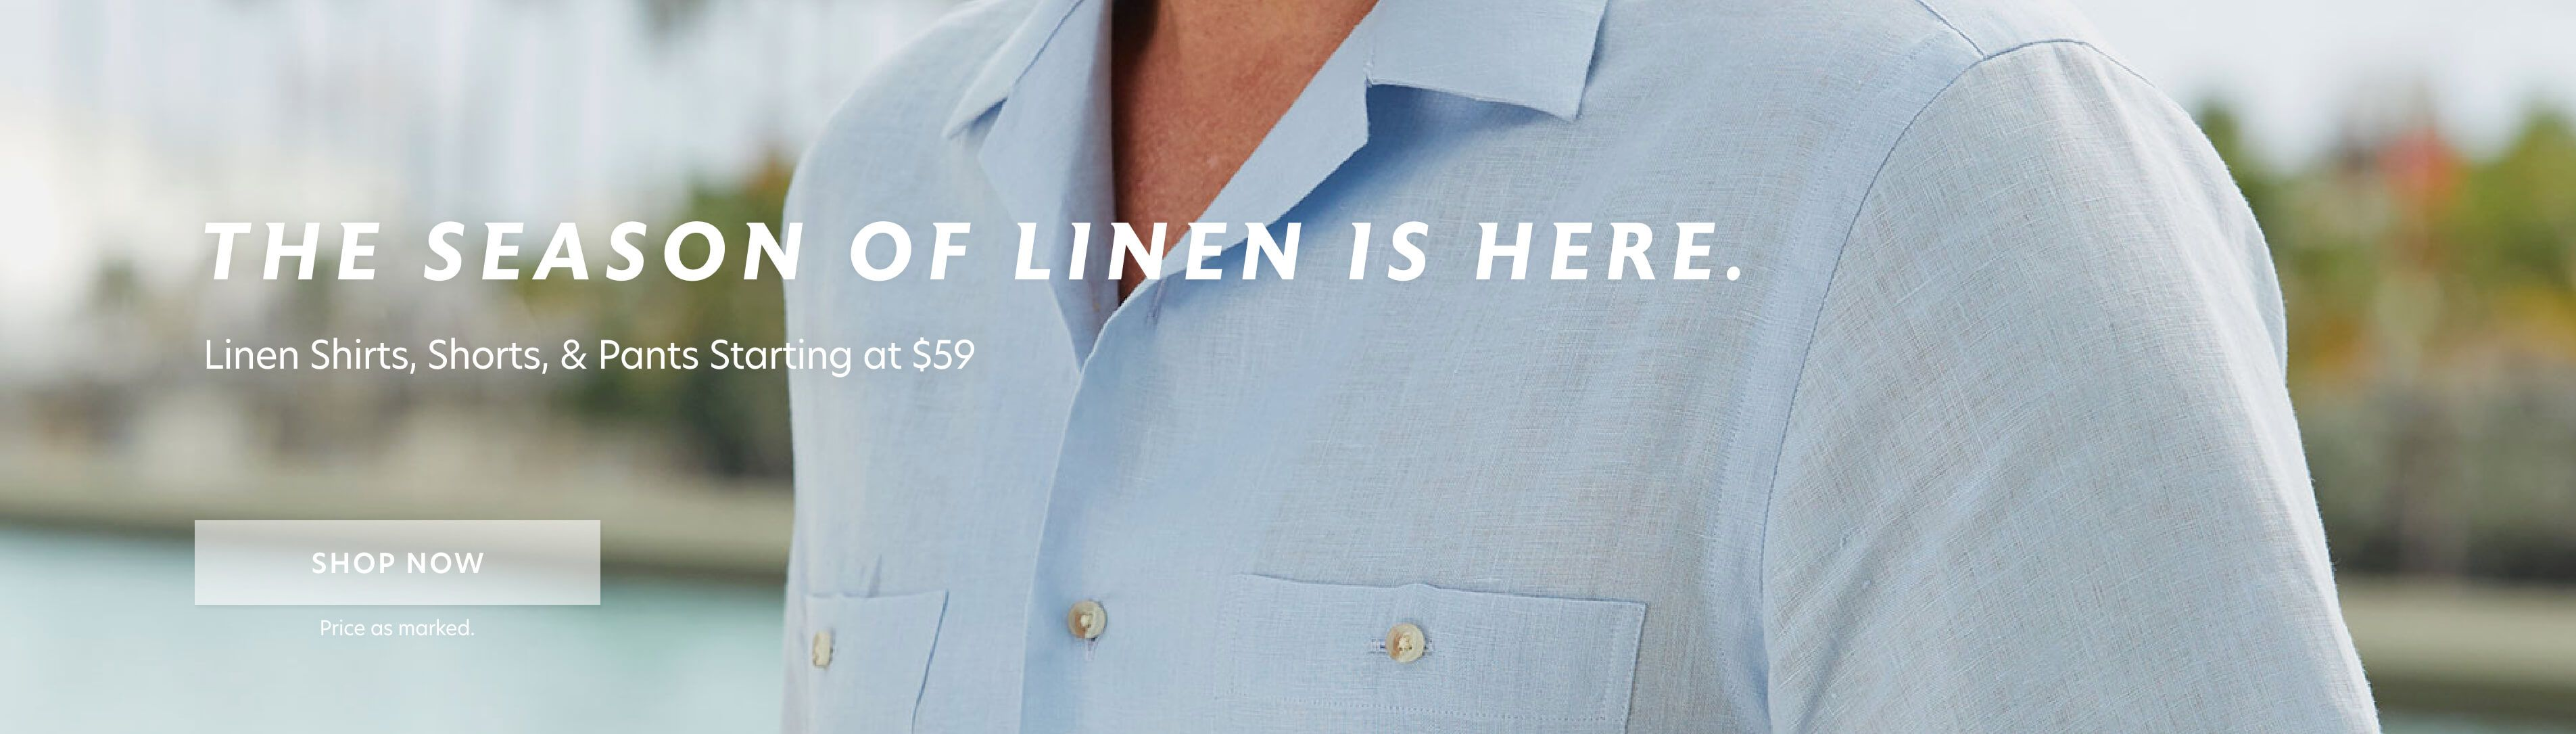 Linen Event - Starting at $59